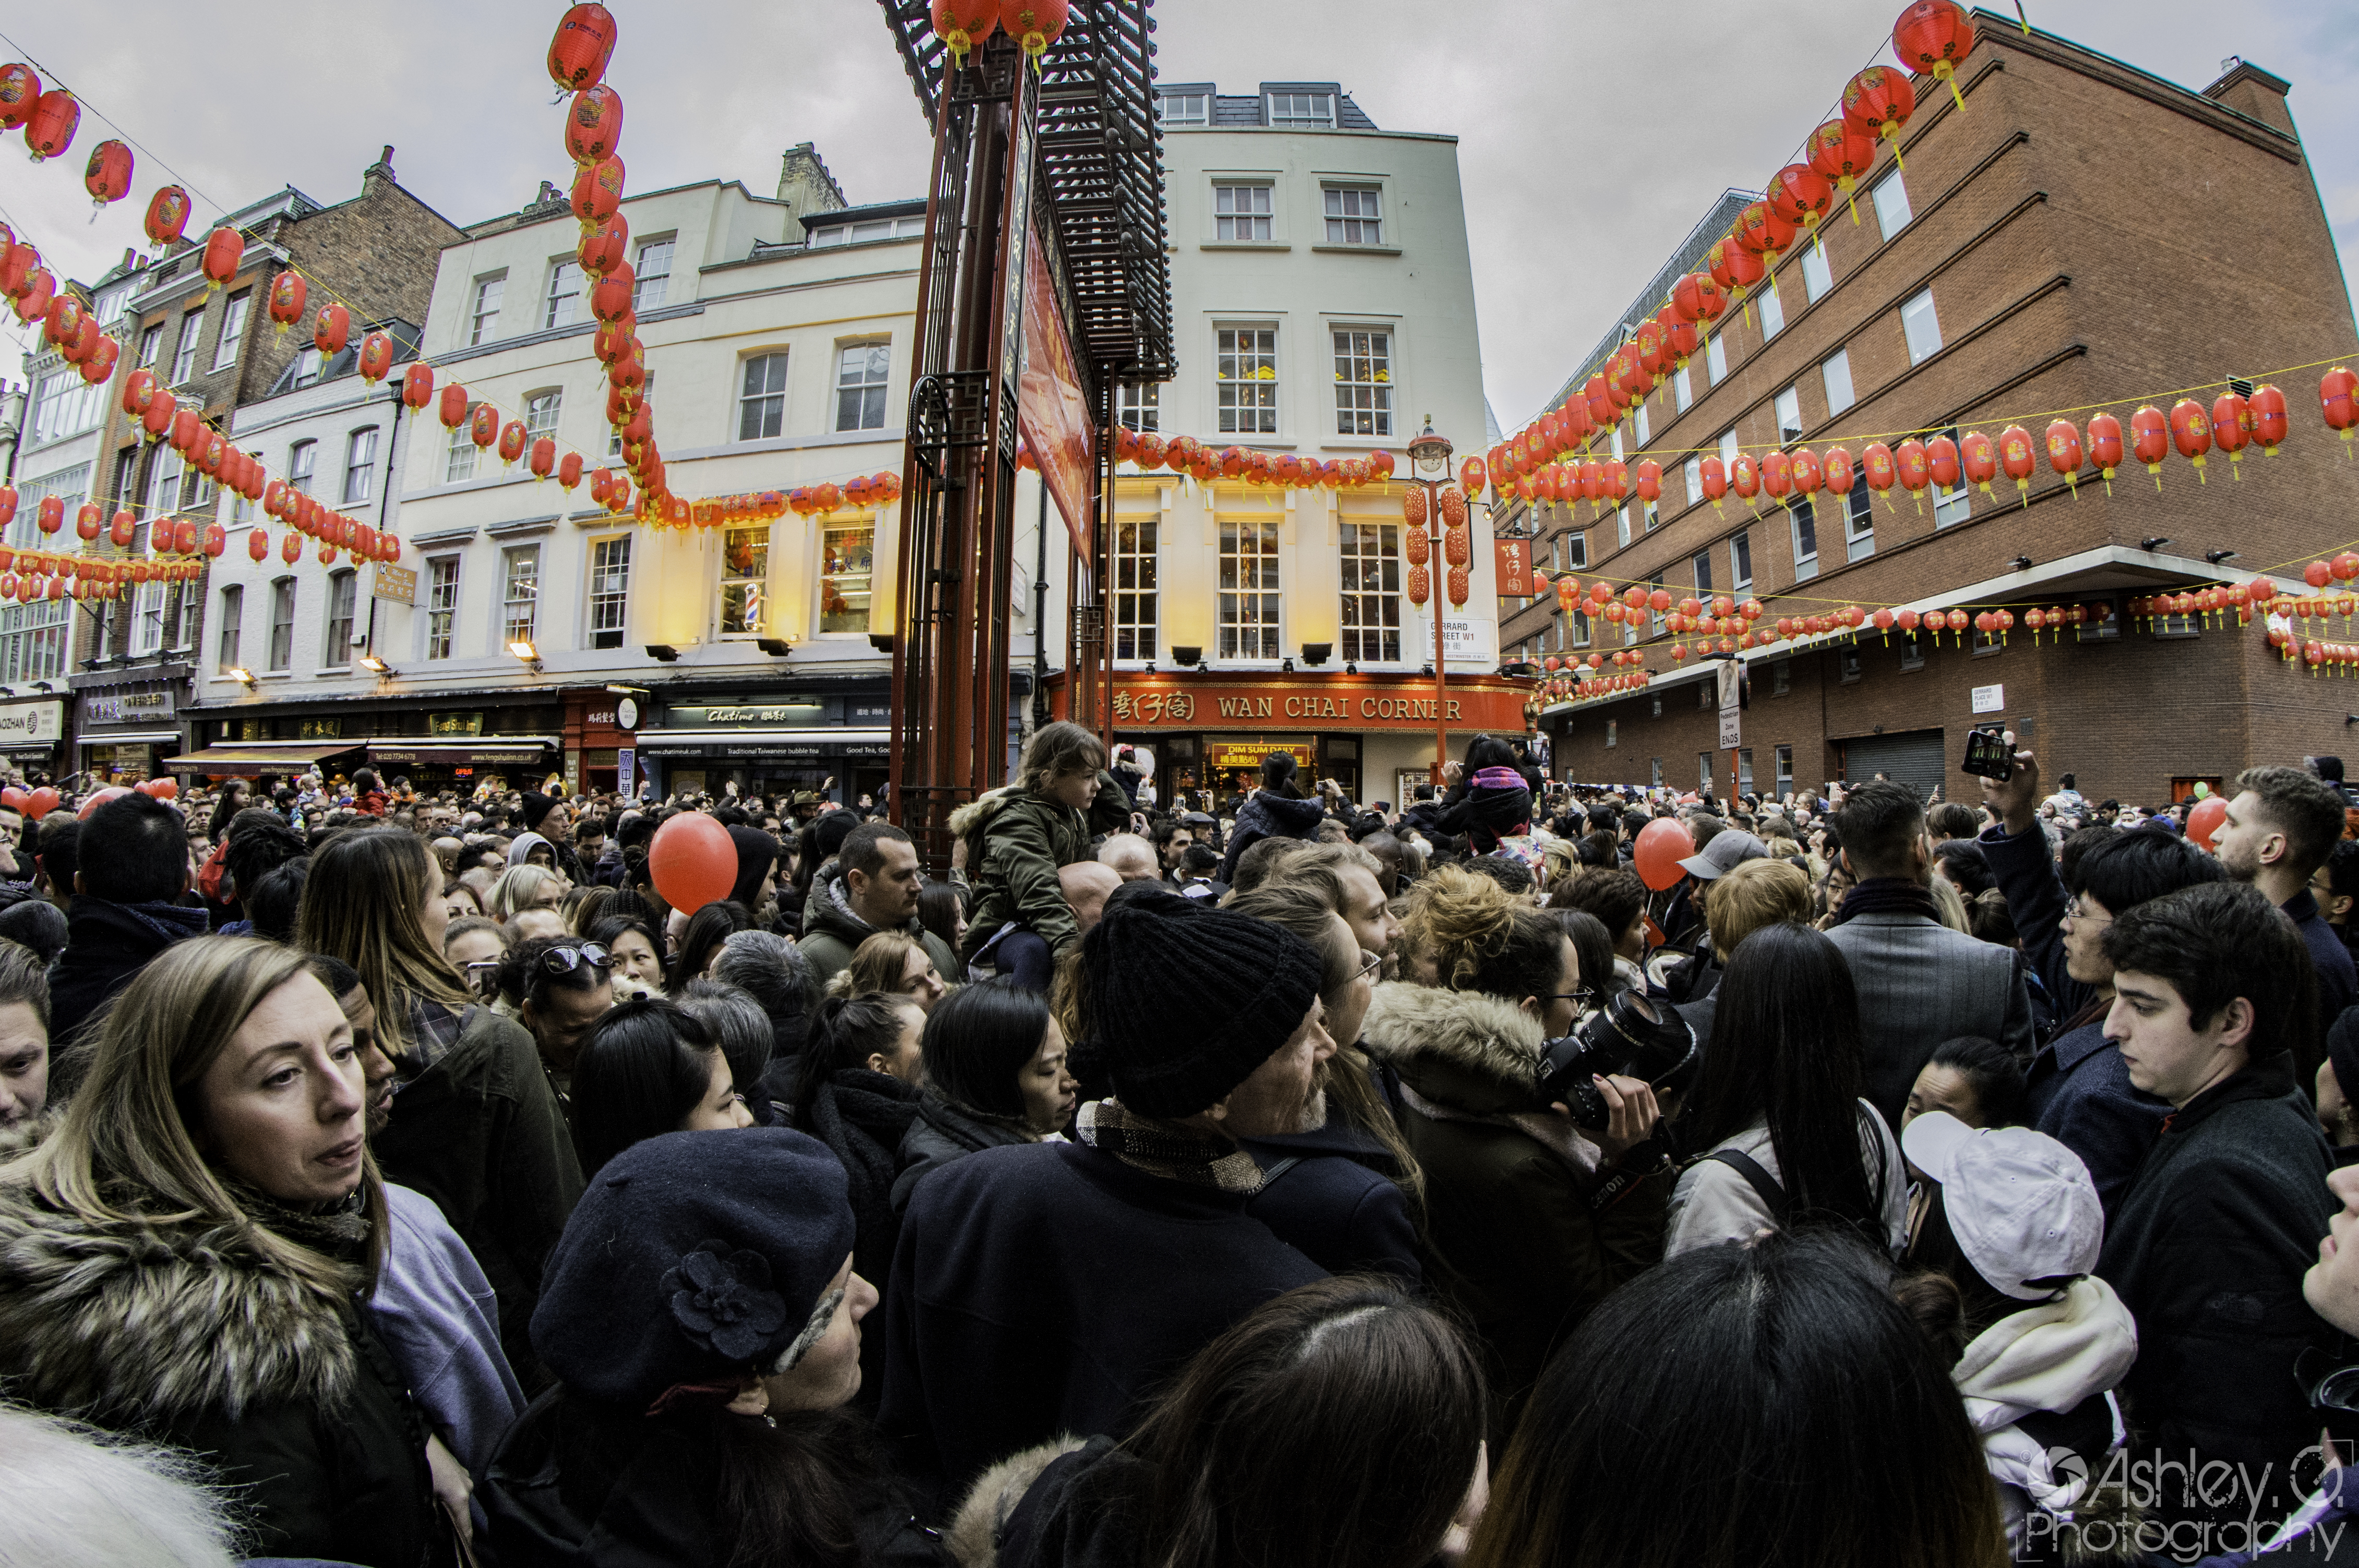 This is busy Chinatown